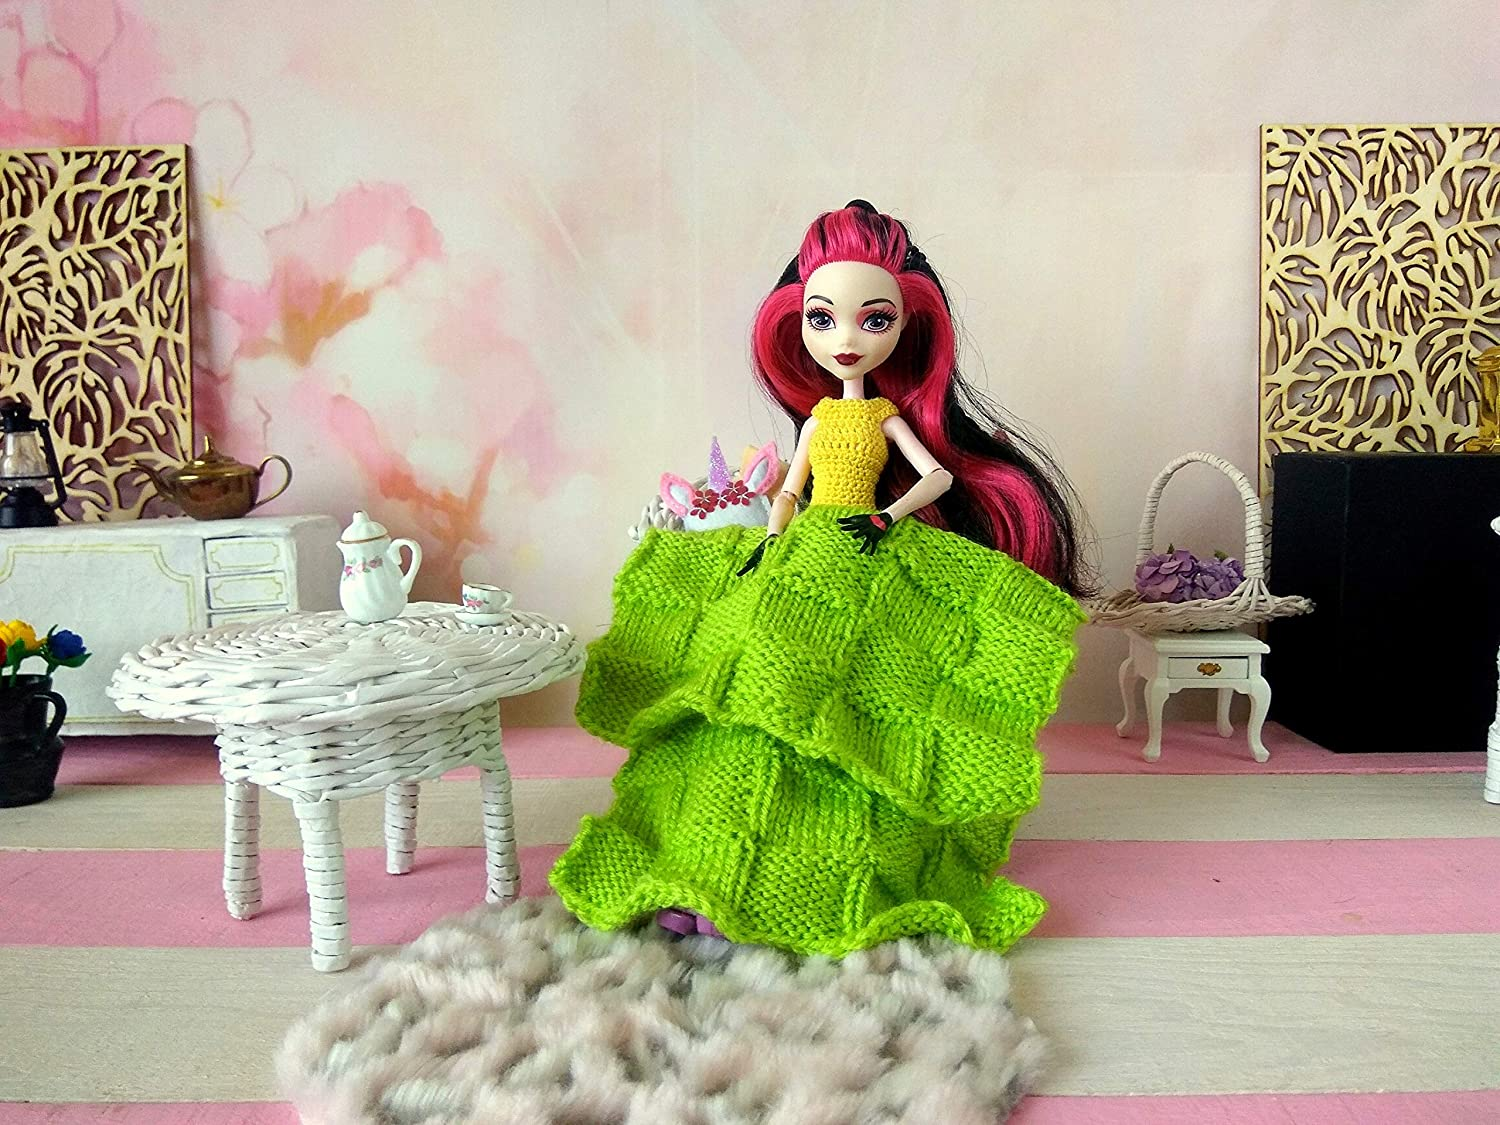 Miniature green blanket with ornament Dollhouse bedding quilt with squares for 12-inch size dolls.